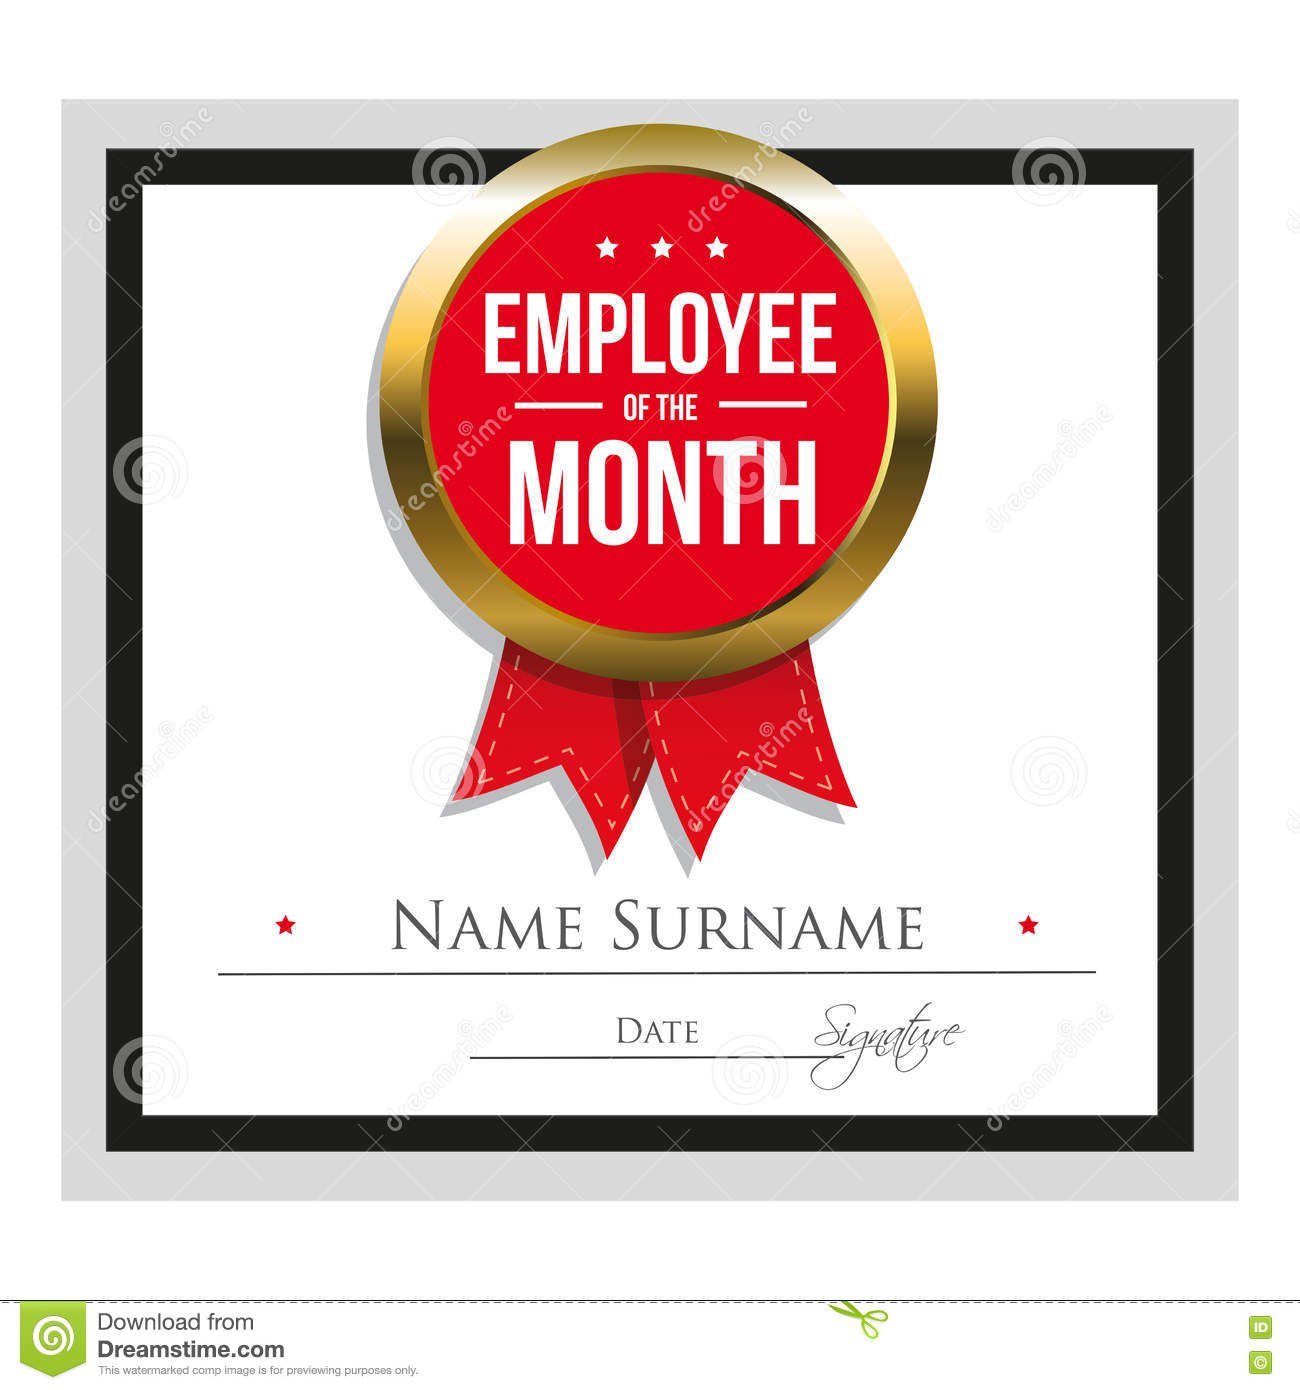 Employee Of The Month Certificate Template Stock Vector With Employee Of The Month Certificate Template